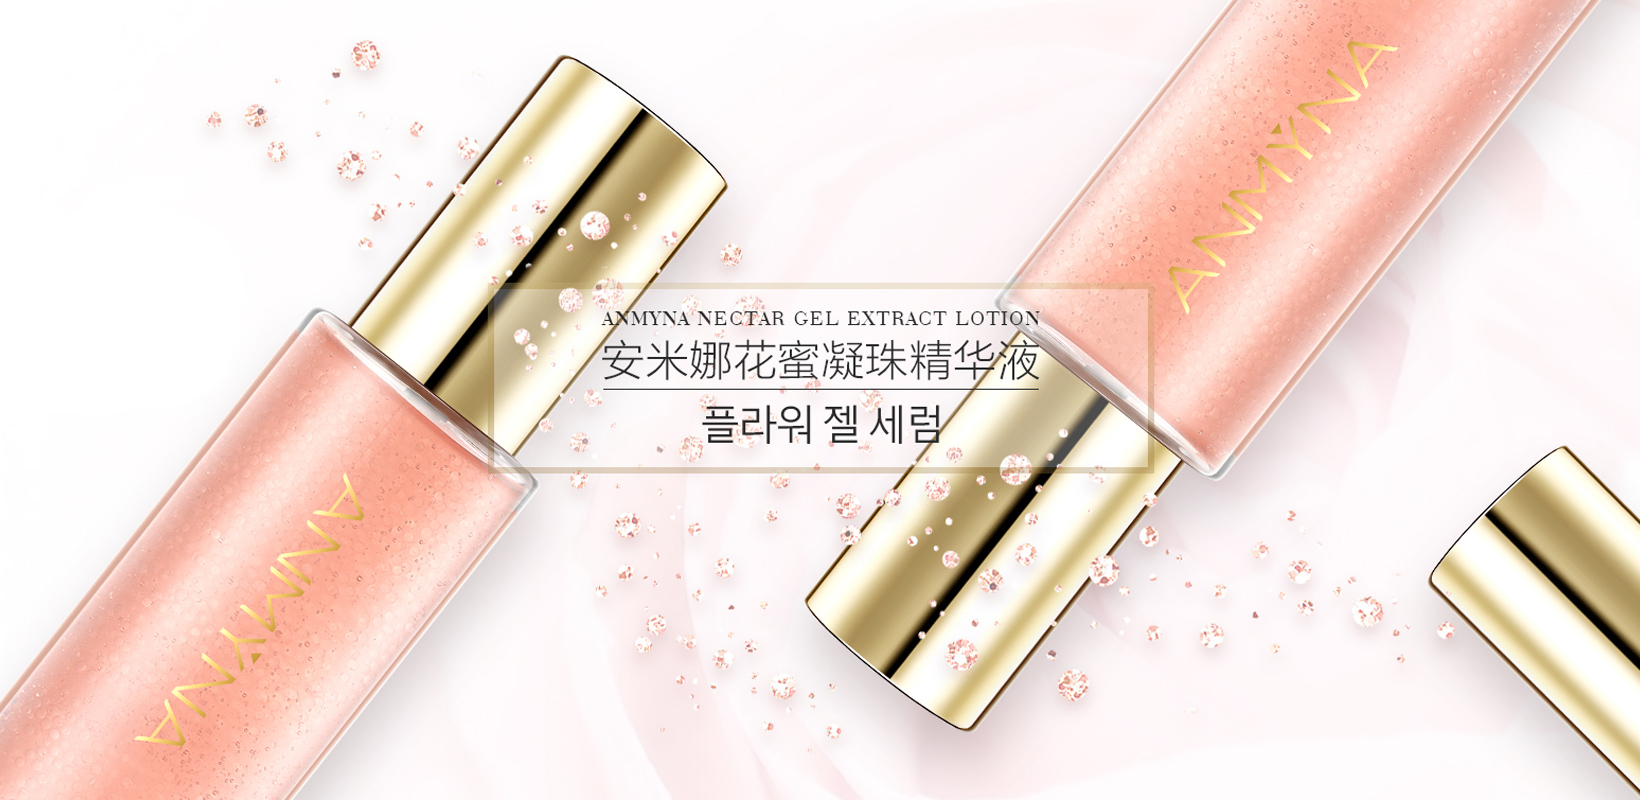 ANMYNA Nectar Gel Extract Lotion